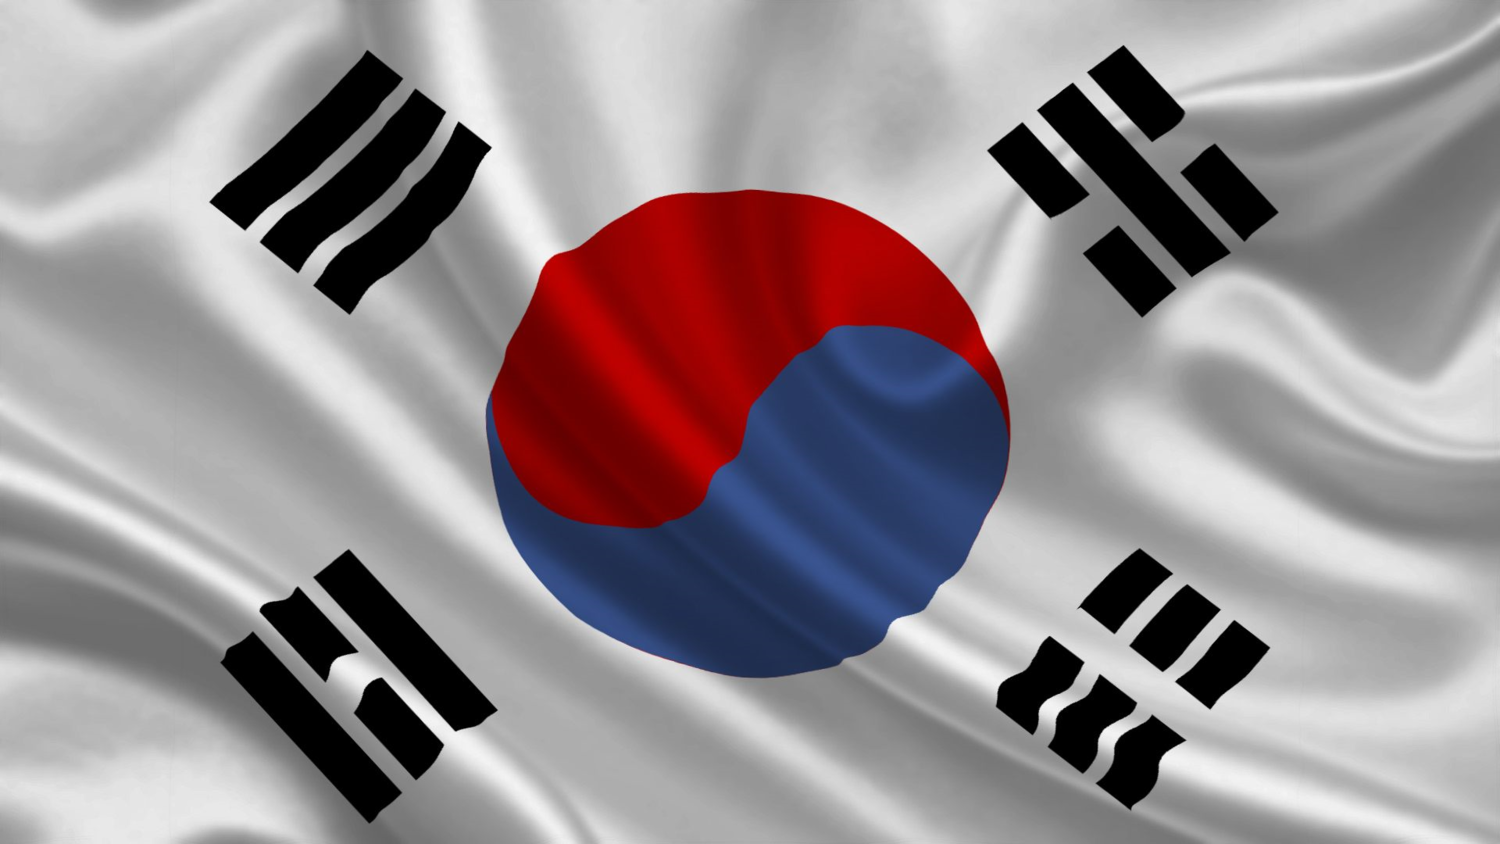 Intelligent Robot Development and Promotion Act of South Korea